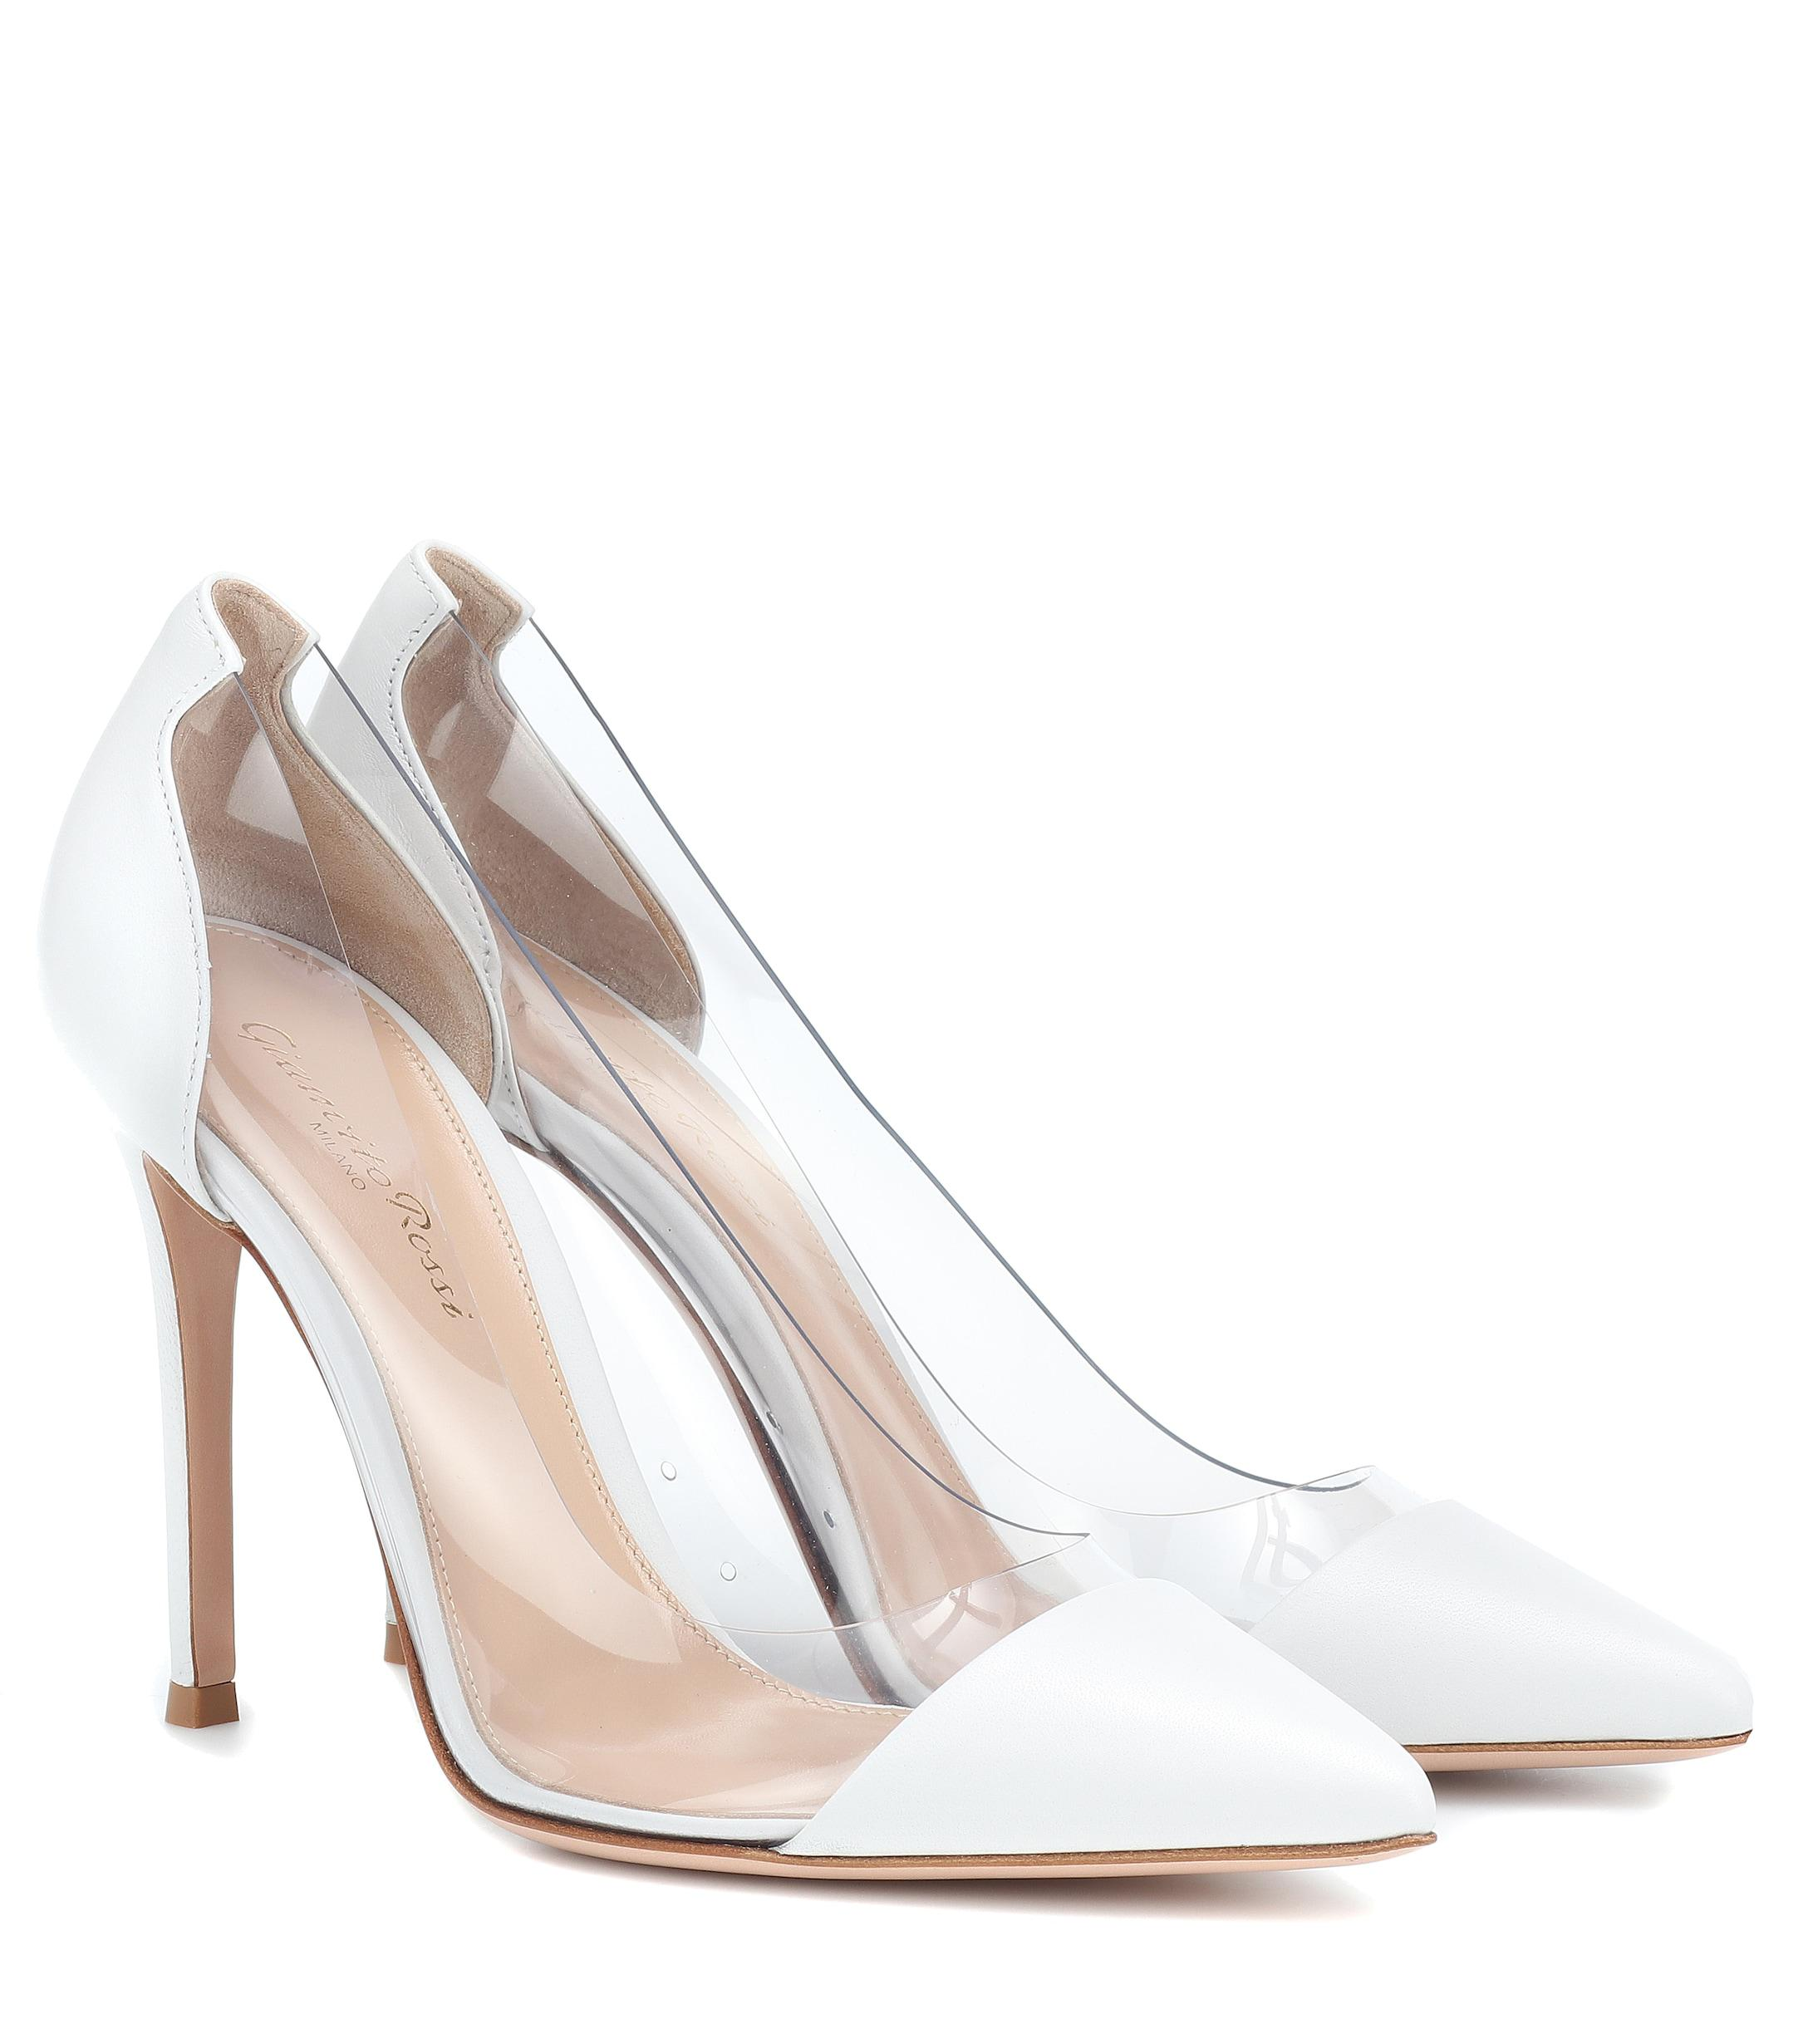 880b9216bf5 Gianvito Rossi - Plexi 105 White Leather And Perspex Pumps - Lyst. View  fullscreen